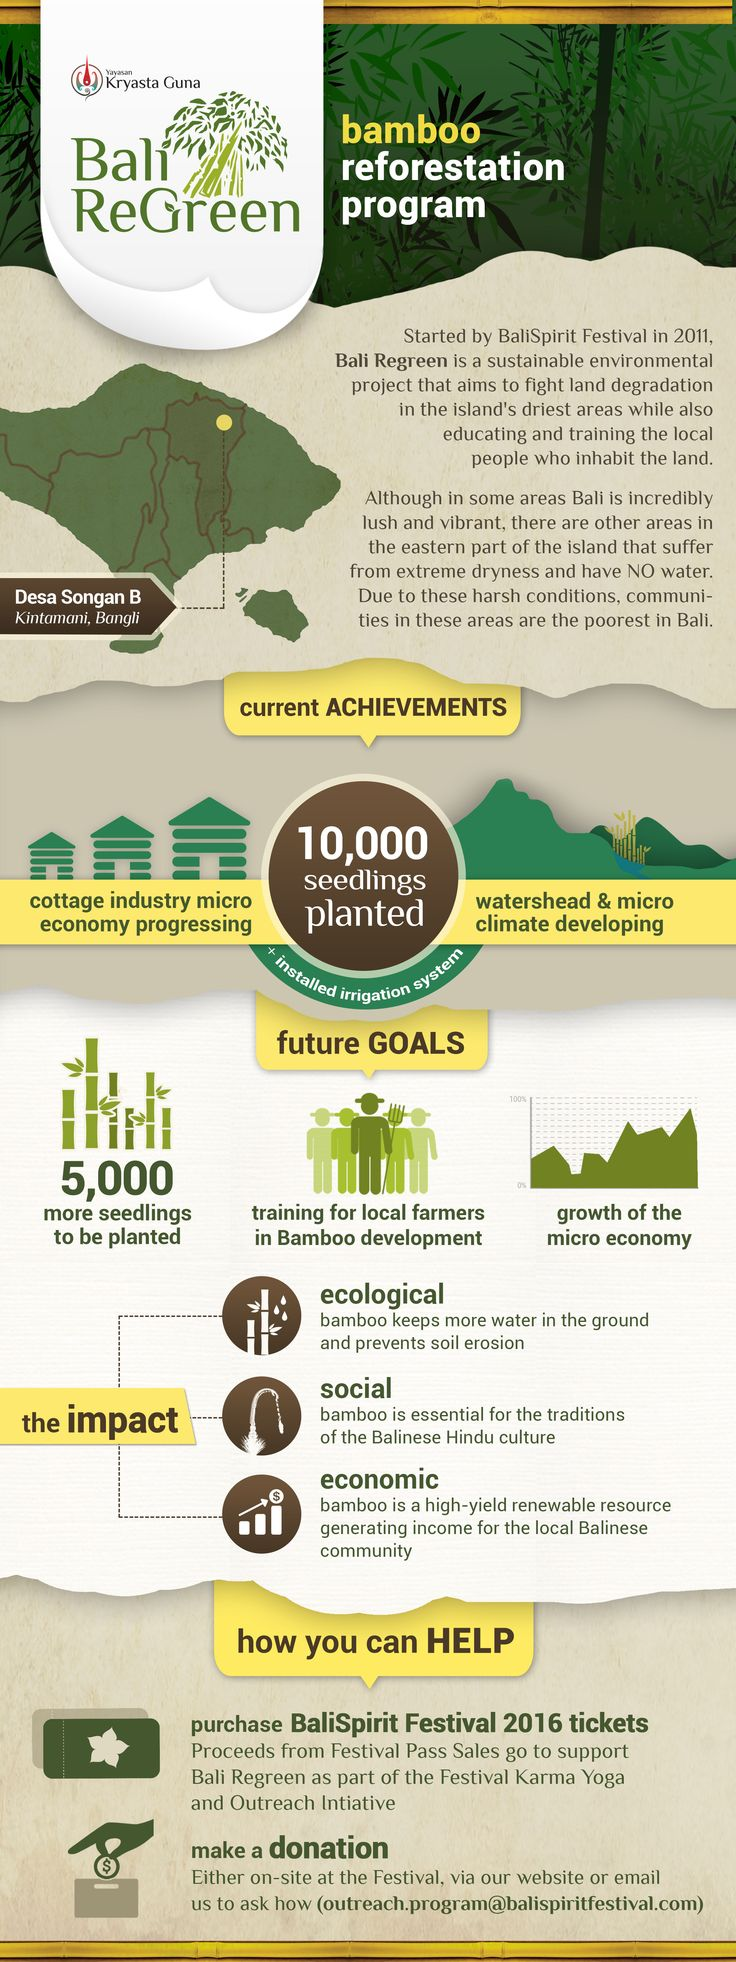 bali regreen bamboo reforestation program by BaliSpirit Festival